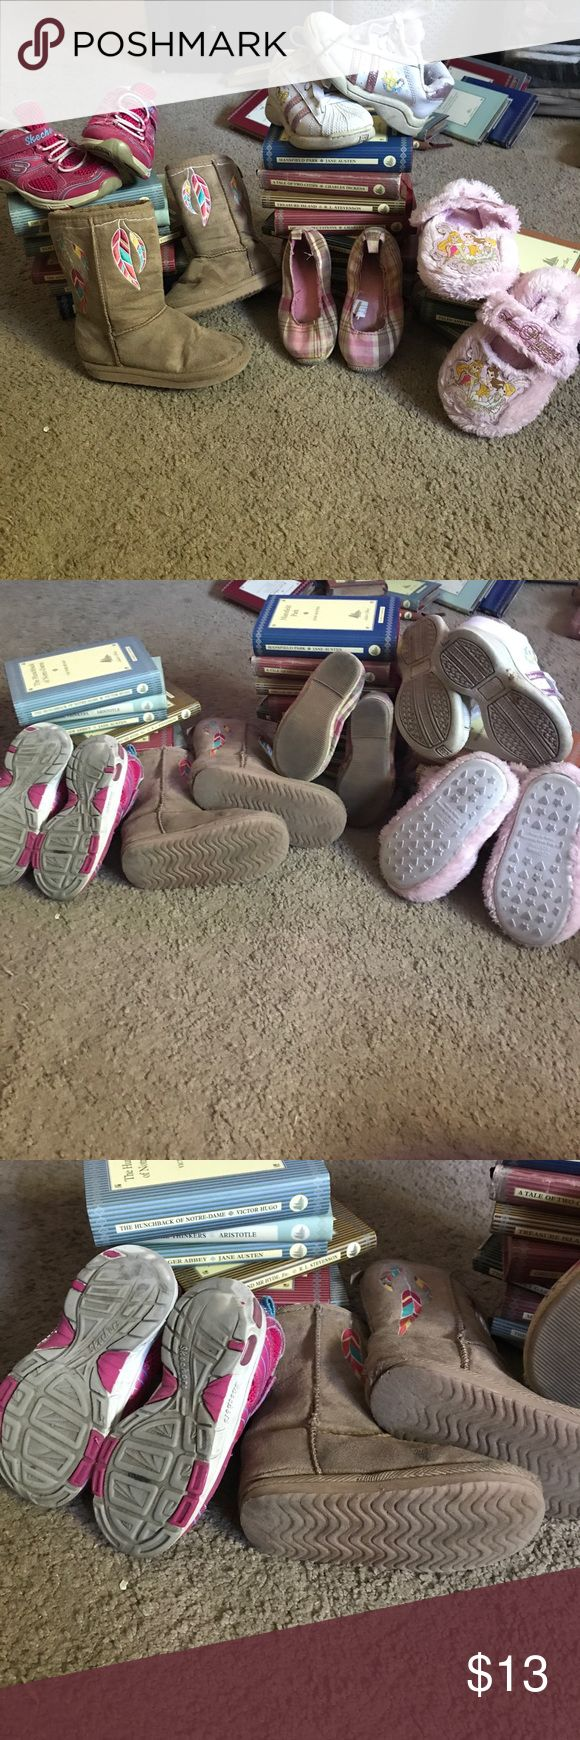 Girls Shoes size 7-8 Boots -old navy size 7, pink sketchers size 8 lights still work, plaid pink flats gap, Disney shoes size 7.5 Disney slippers size 7-8. Have been very loves and so show some wear on the bottoms and tips of the gap shoes. ❤️💓💖 Skechers Shoes